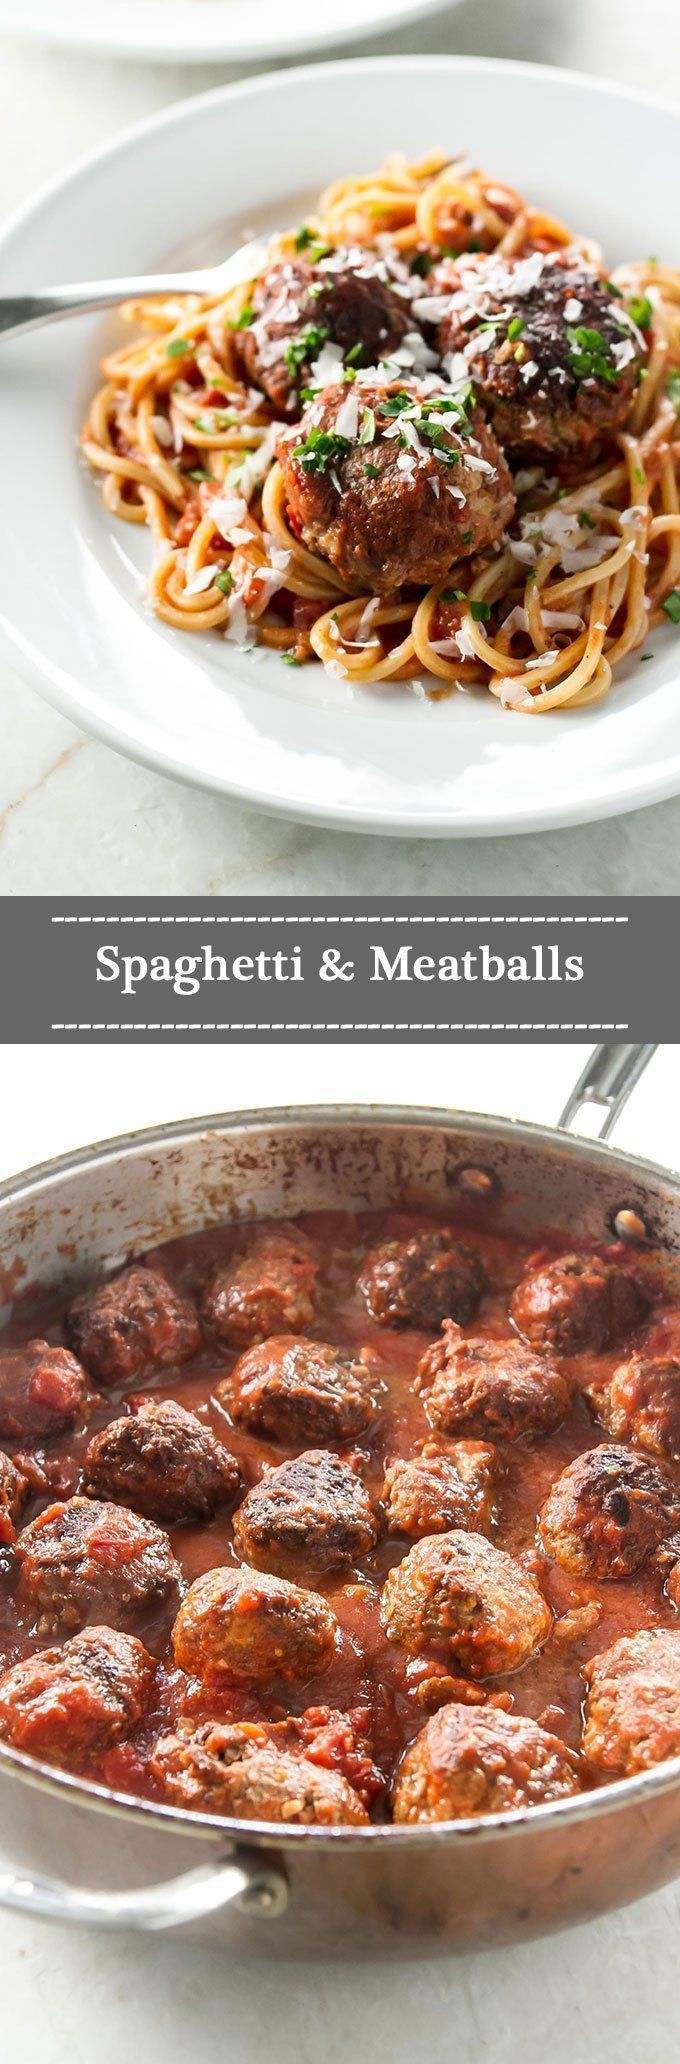 Tender meatballs in a super simple tomato sauce #pasta #meatballs #comfortfood